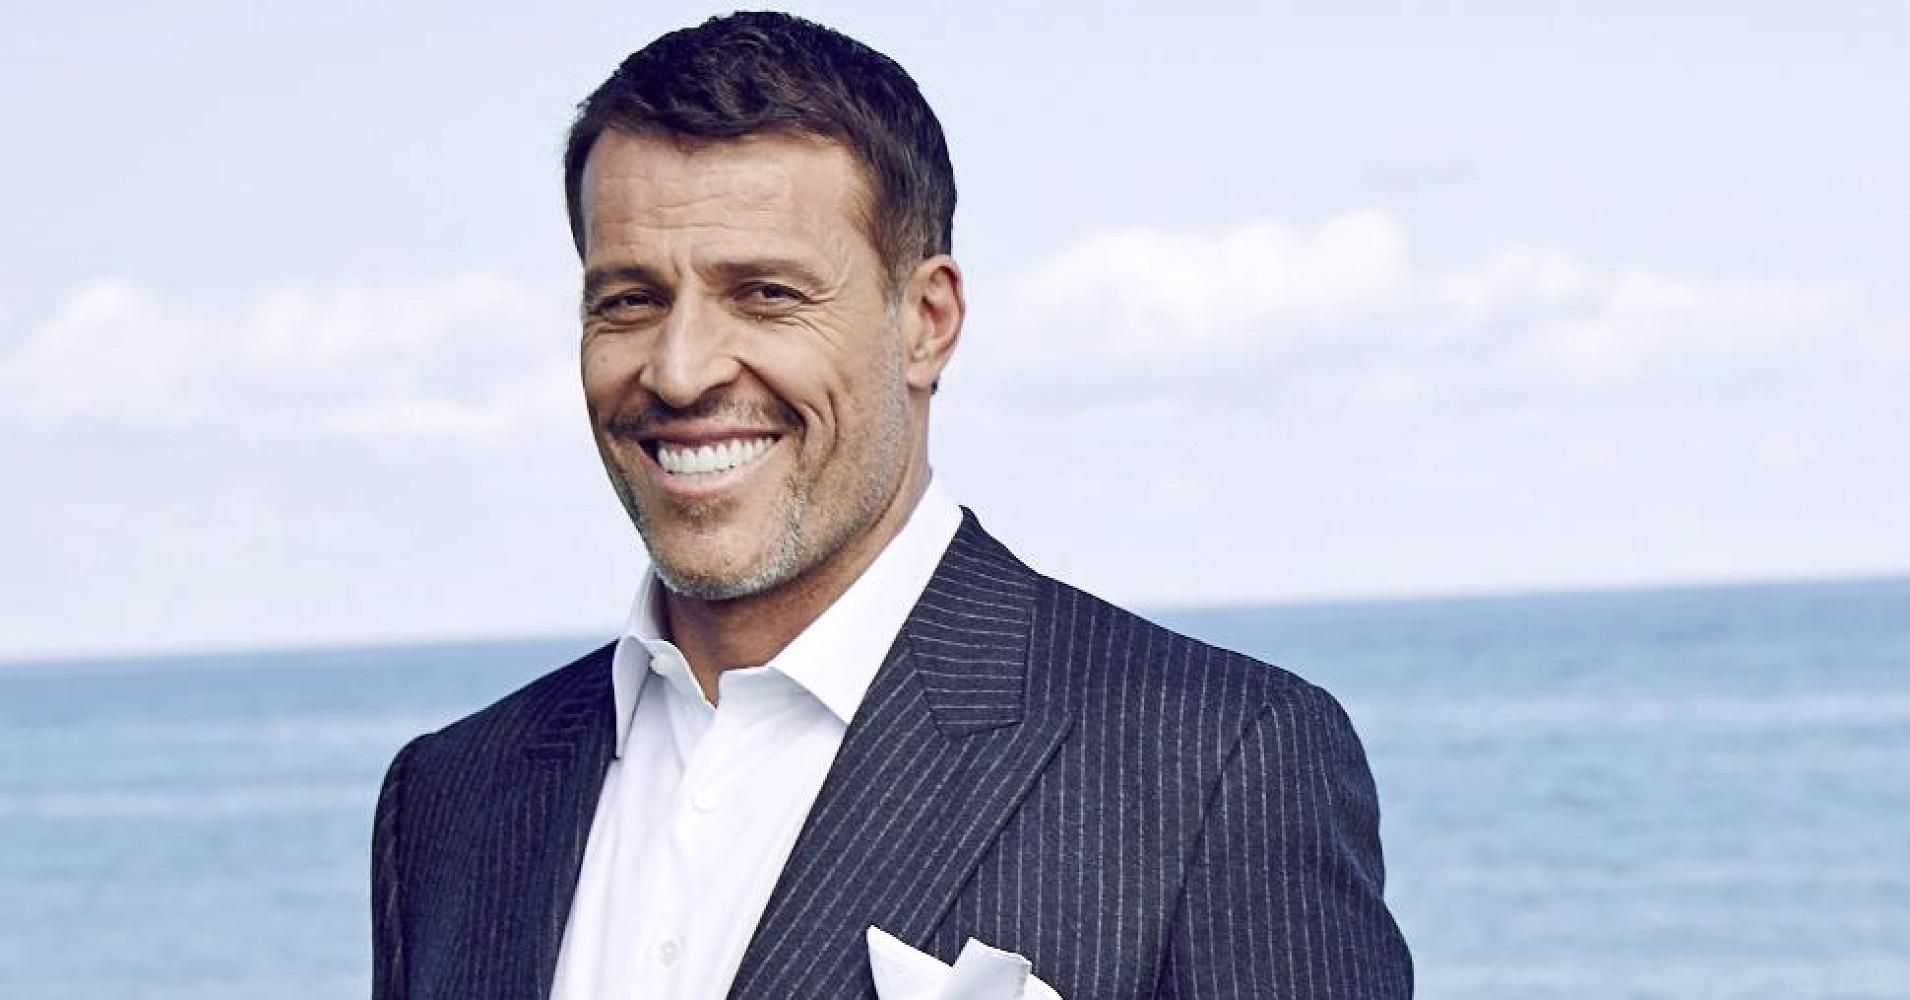 Tony Robbins Shares The 10 Minute Morning Routine That